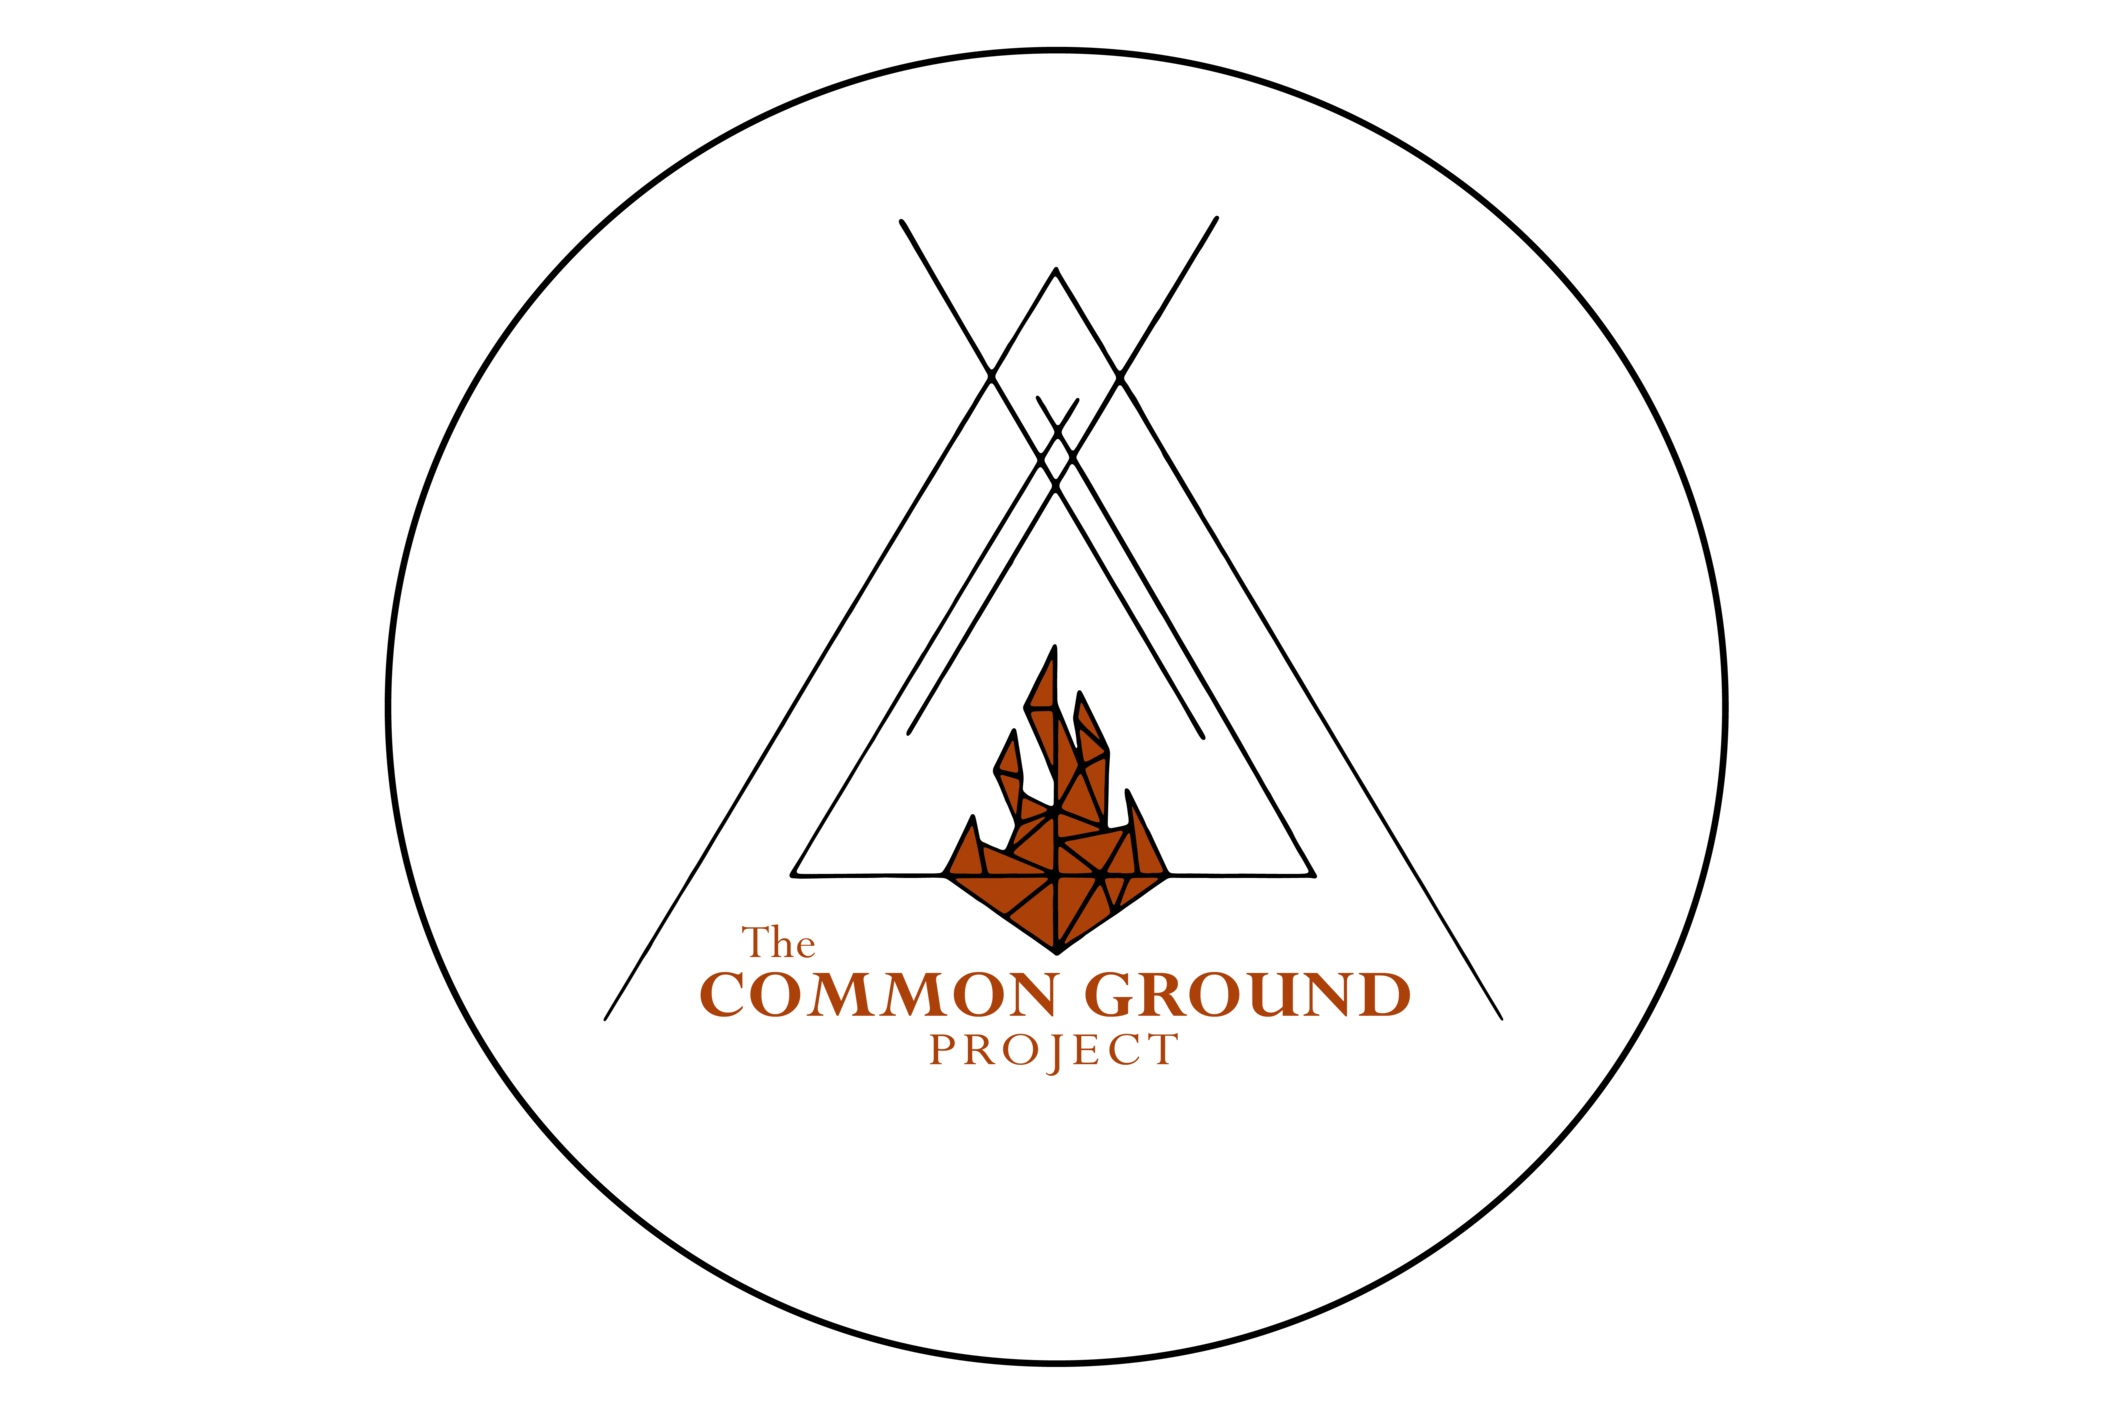 The Common Ground Project